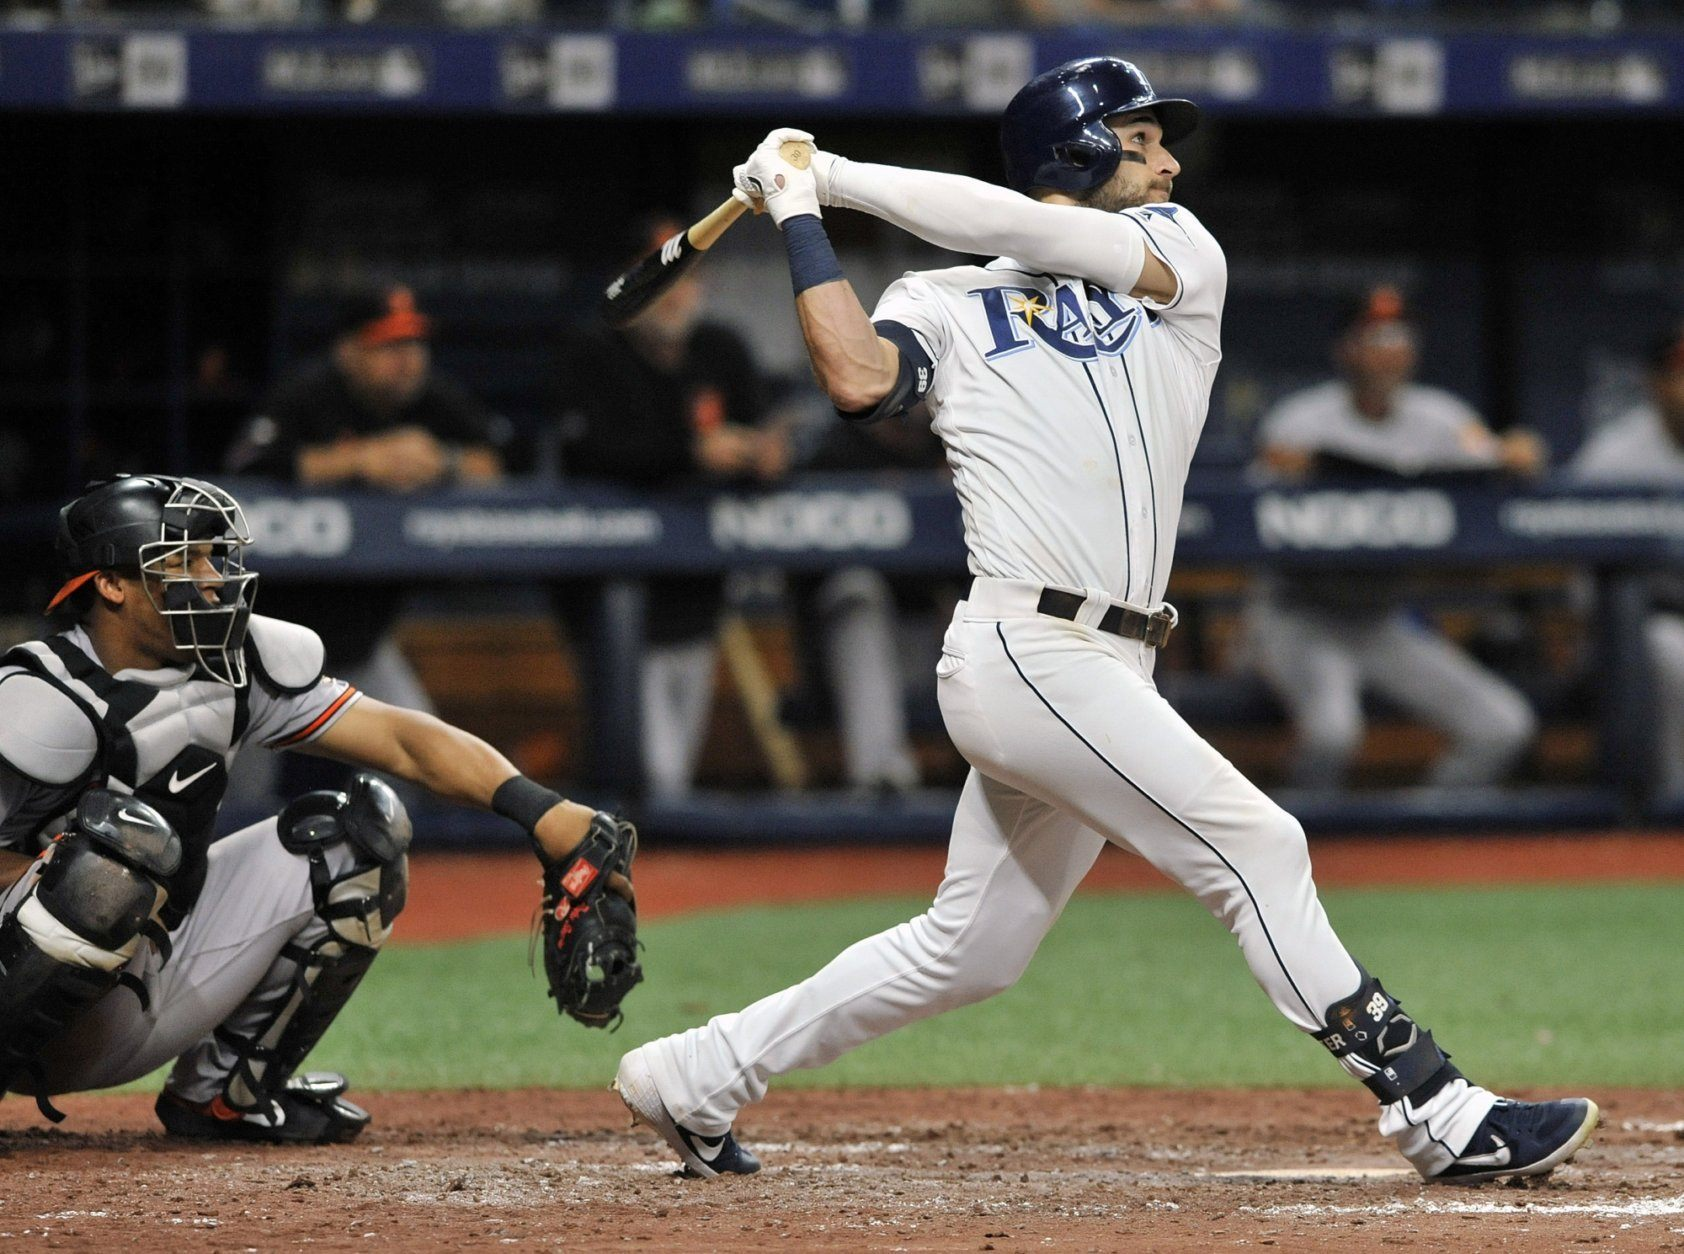 Baltimore Orioles catcher Pedro Severino, left, looks on as Tampa Bay Rays' Kevin Kiermaier hits a three-run home run off Baltimore reliever Branden Kiline during the sixth inning of a baseball game Monday, July 1, 2019, in St. Petersburg, Fla. (AP Photo/Steve Nesius)